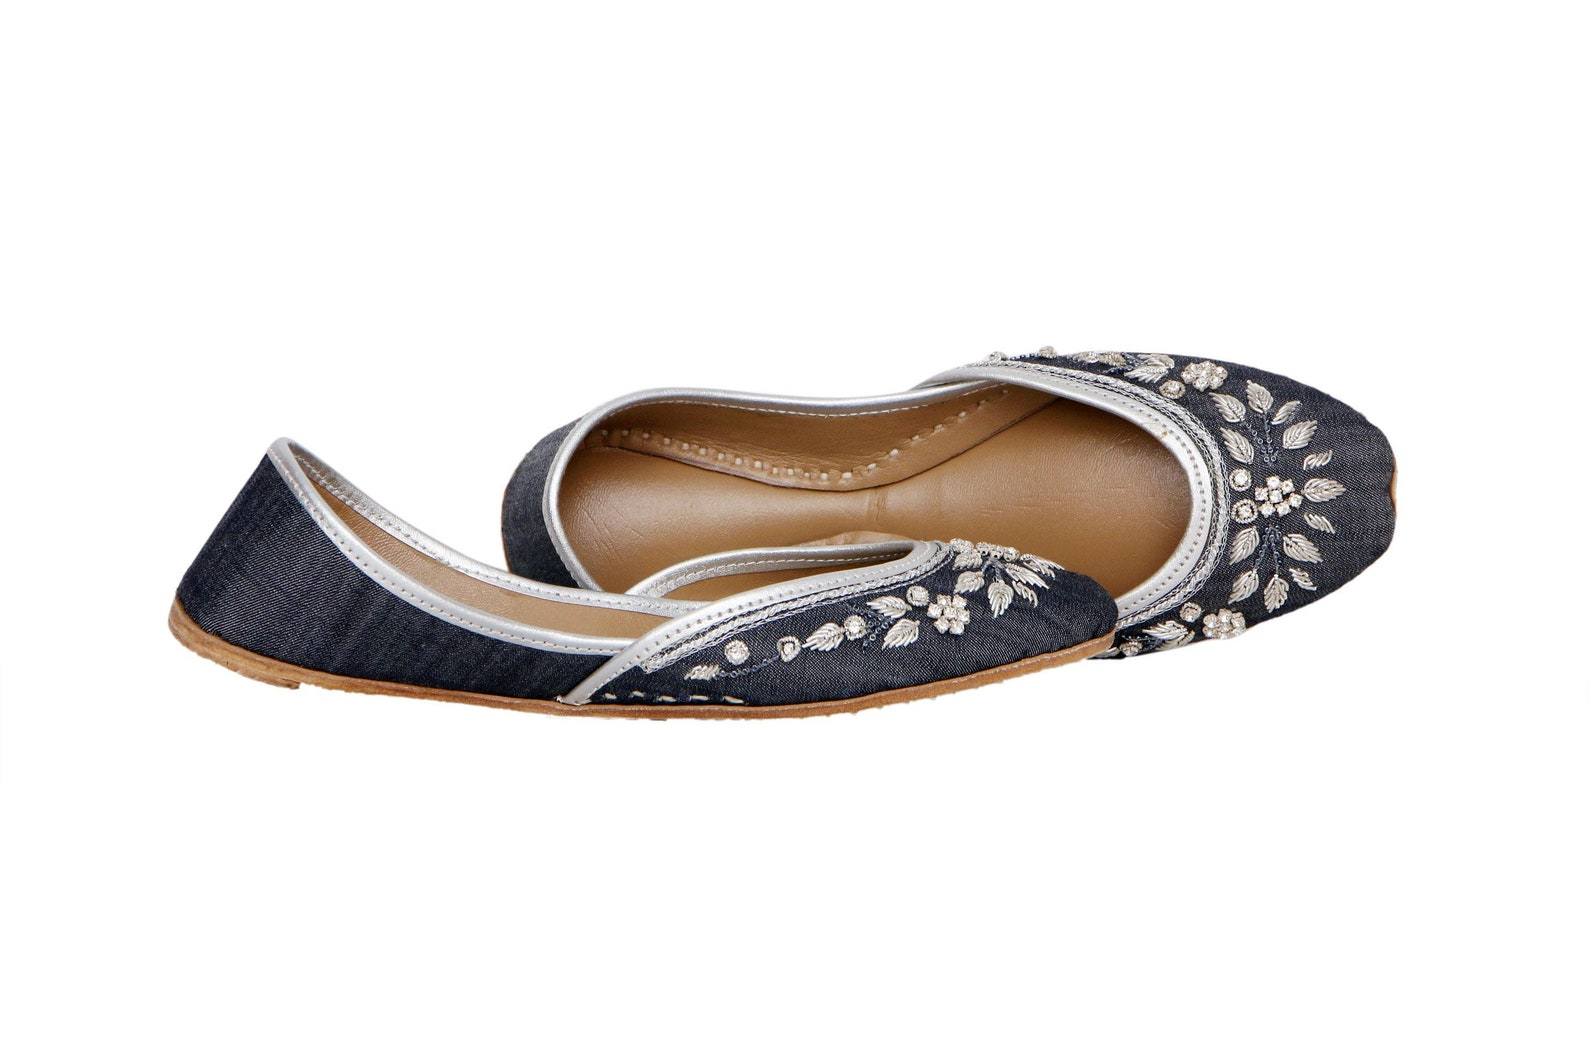 denim embellished ballet flat shoes blue jutis blue mojari blue khussa